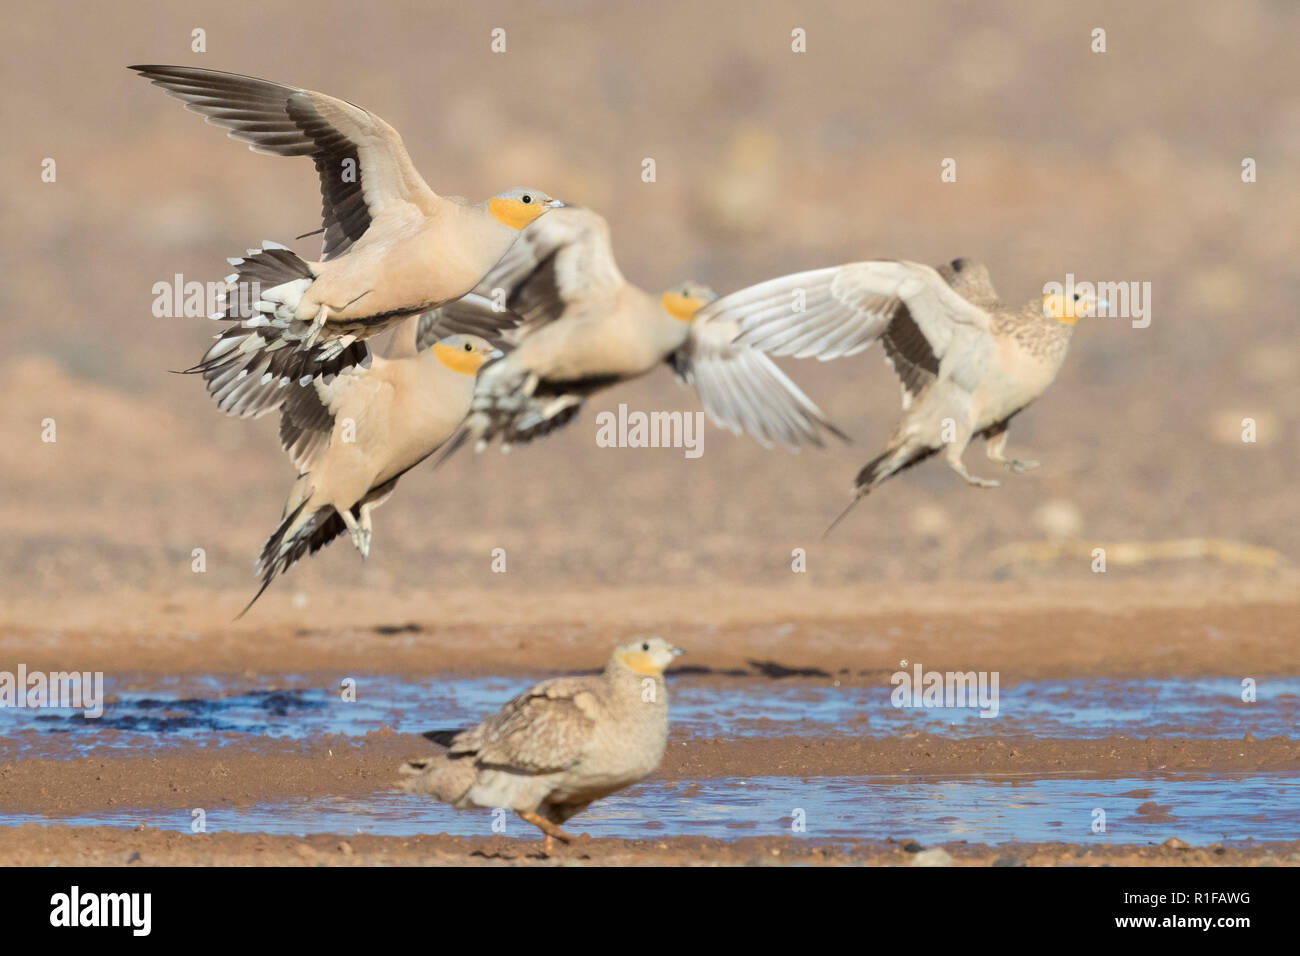 Spotted Sandgrouse (Pterocles senegallus), small flock landing at drinking pool Stock Photo